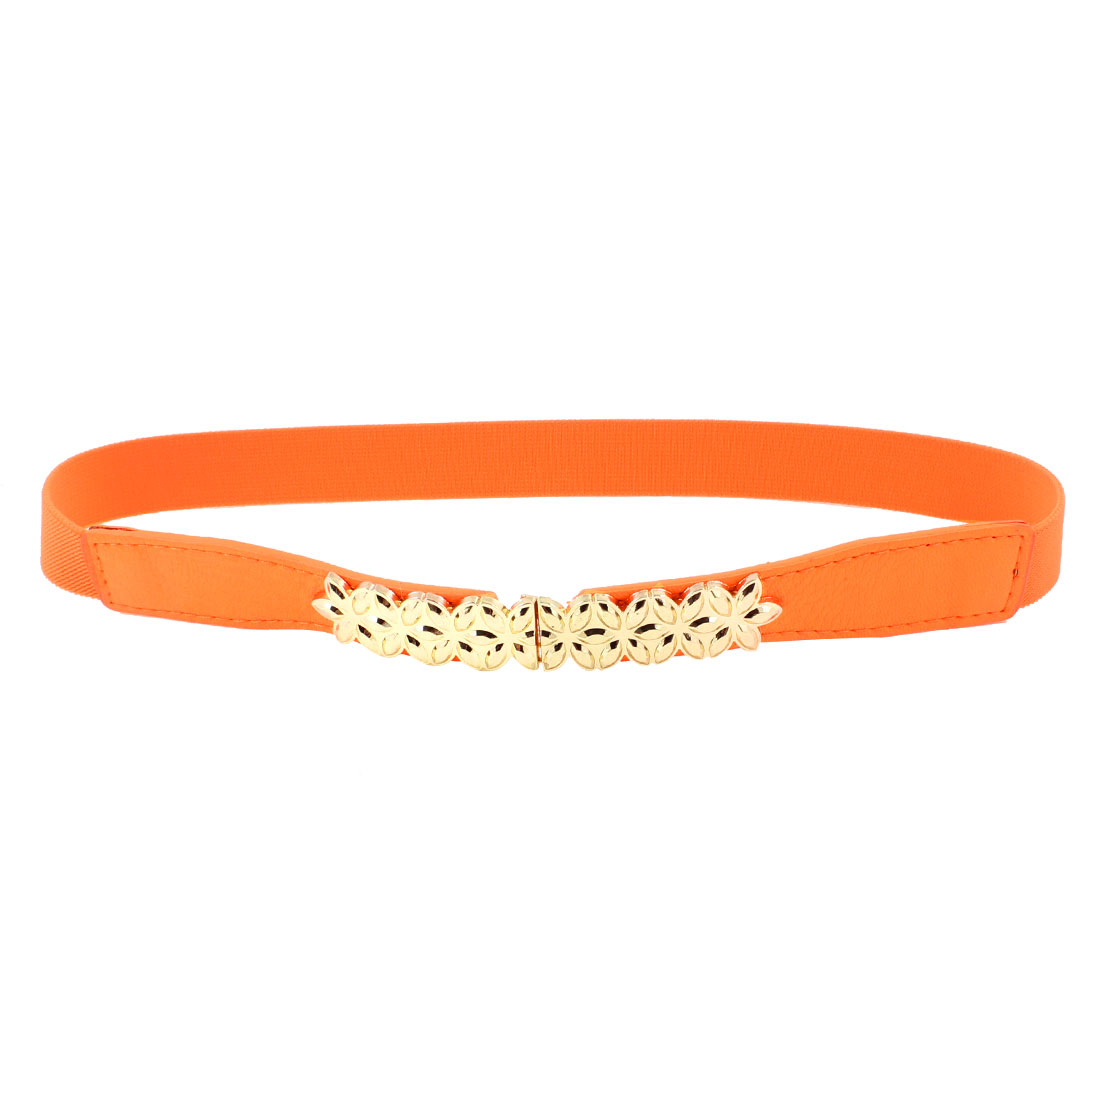 Gold Tone Metal Flower Decor Orange Elastic Skinny Waist Band Belt for Women